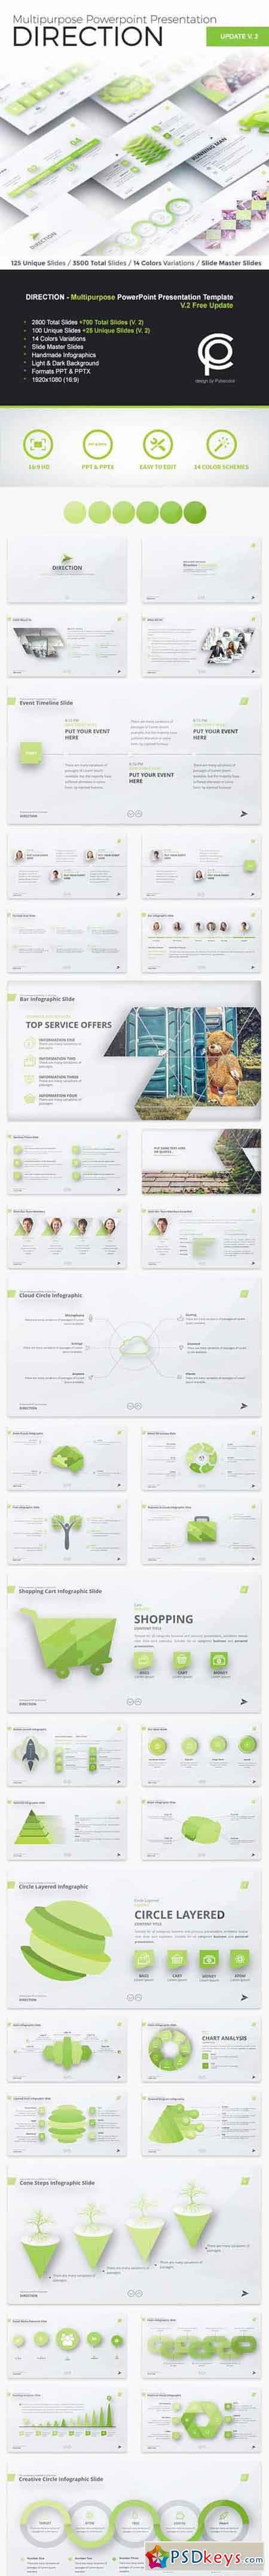 DIRECTION - Multipurpose PowerPoint Presentation 13436004